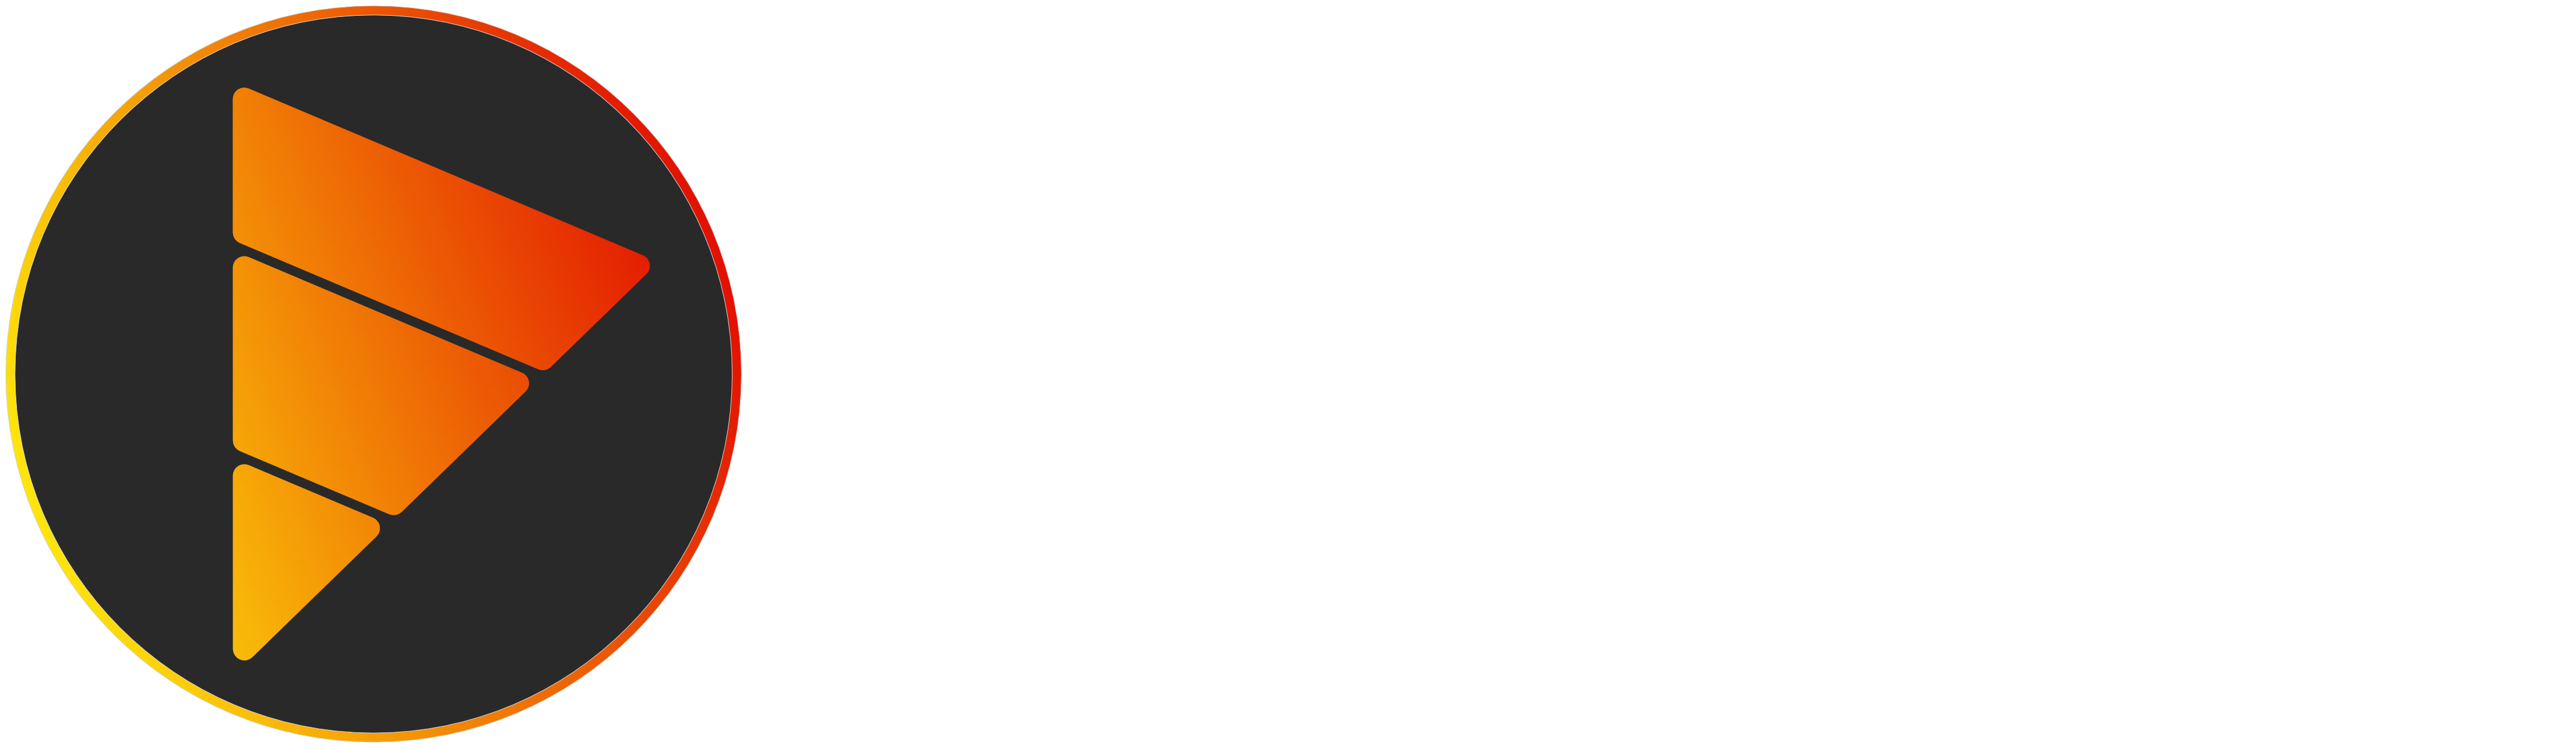 FWD+ triangle Logo